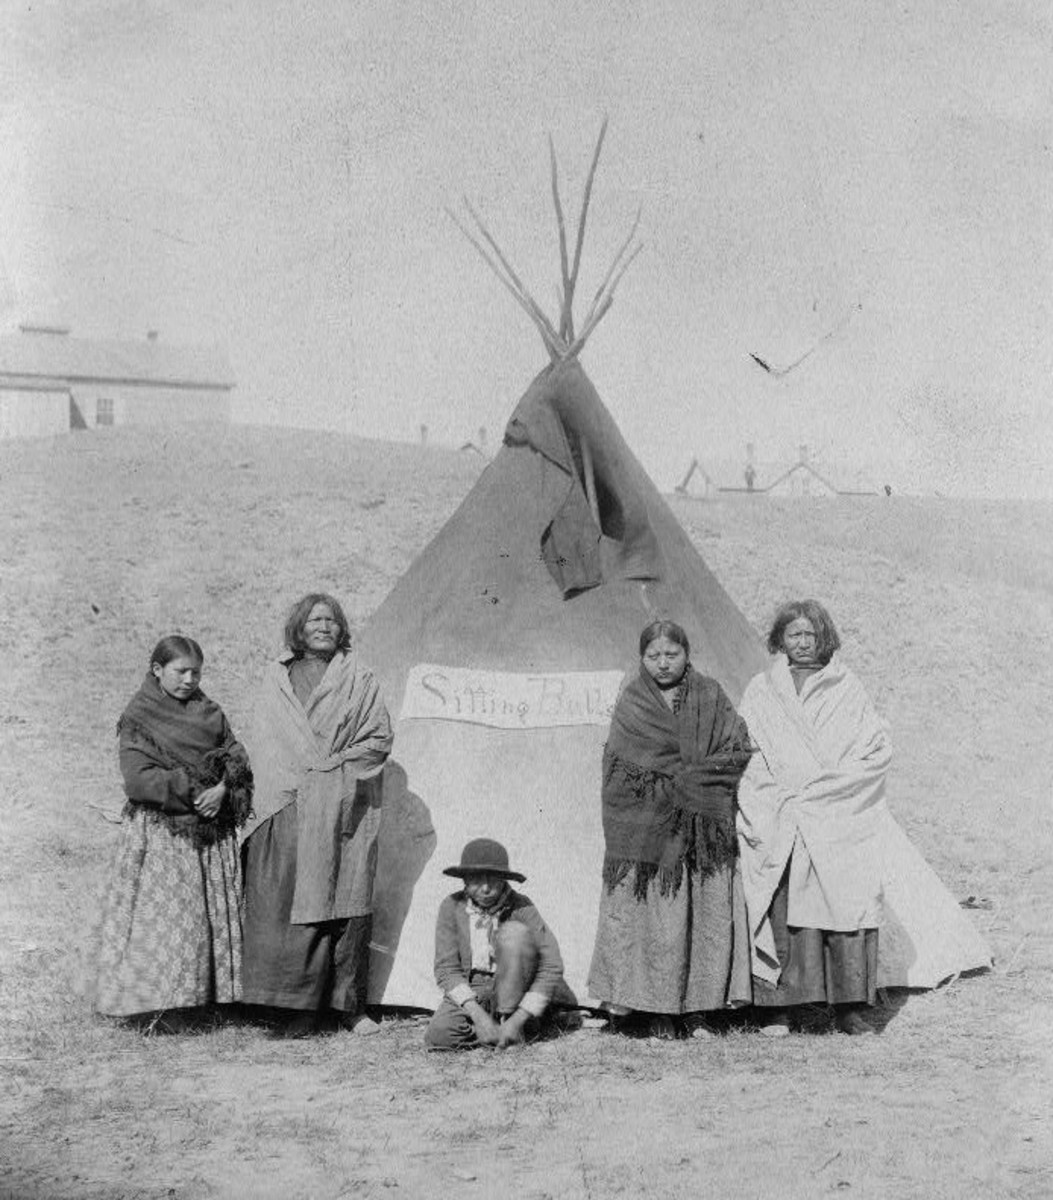 Sitting Bull's tepee and family.